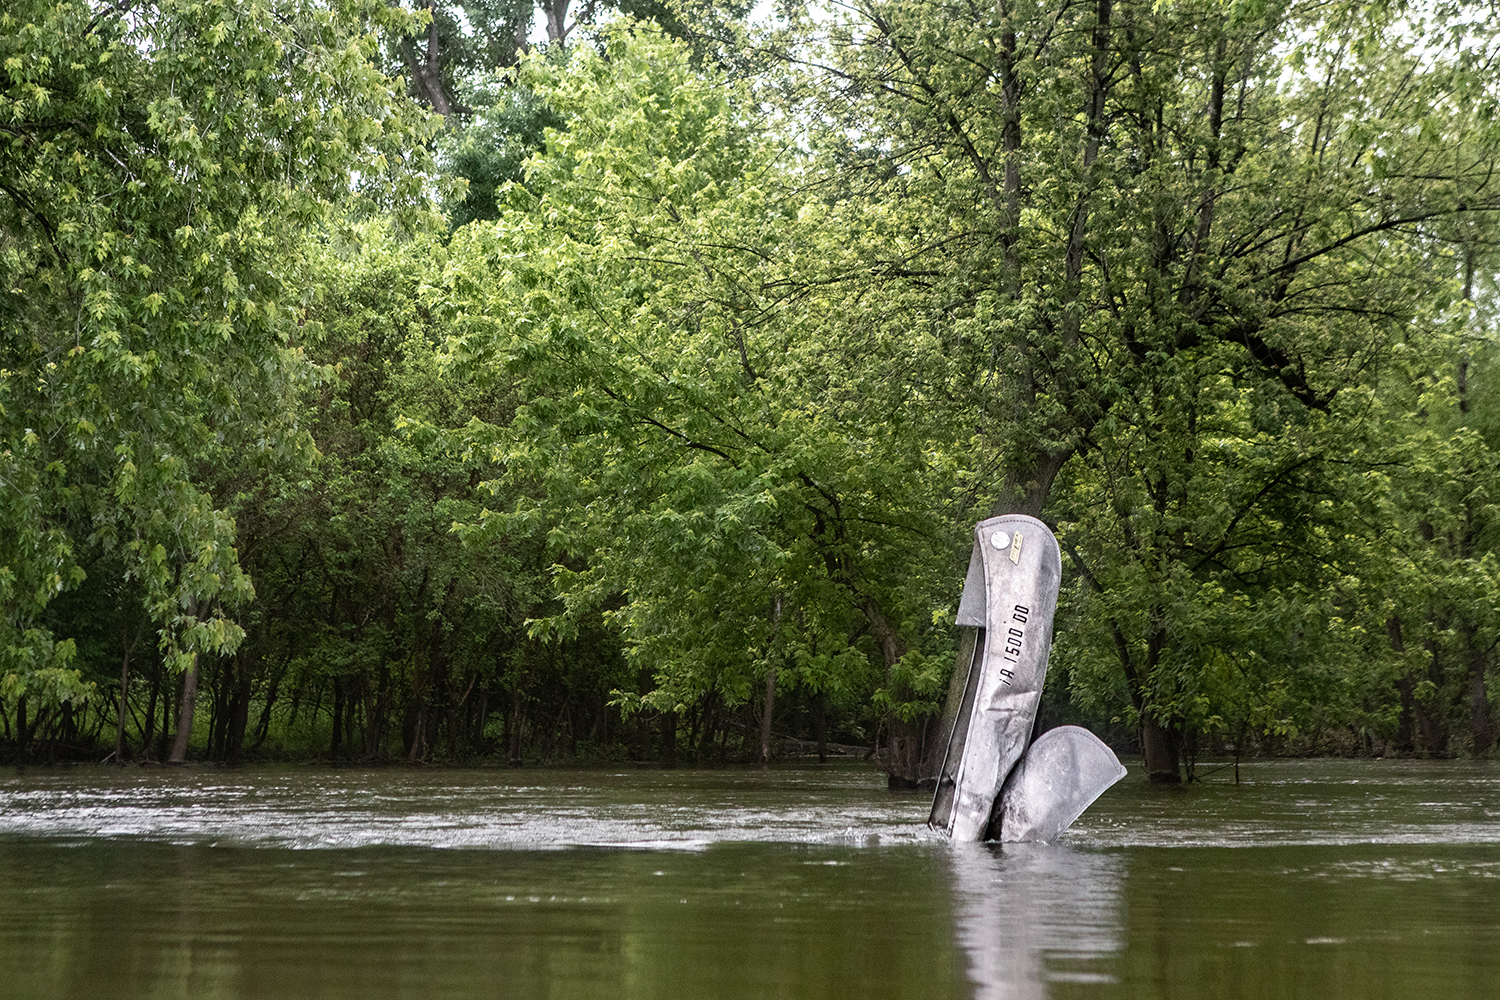 A+crumpled+canoe+sits+upright+in+the+waters+of+the+Iowa+River+south+of+Iowa+City+on+June+12%2C+2019.+The+Iowa+River+United+States+Geological+Survey+gauge+captured+a+flow+of+10%2C800+cubic+feet+per+second+on+June+15.